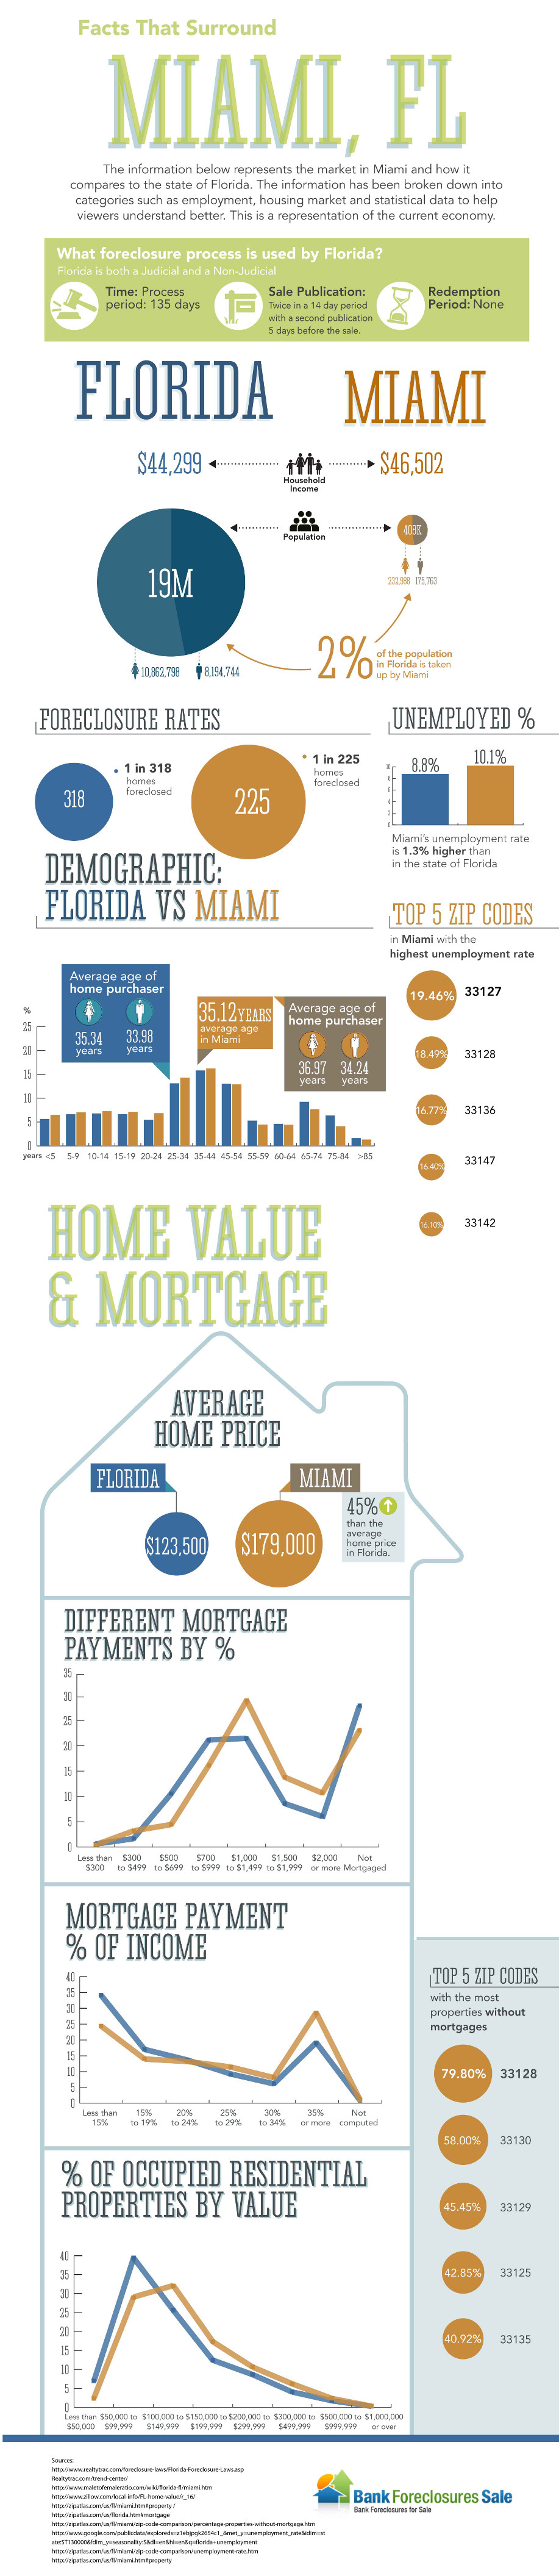 Miami, FL Real Estate Infographic at BankForeclosuresSale.com